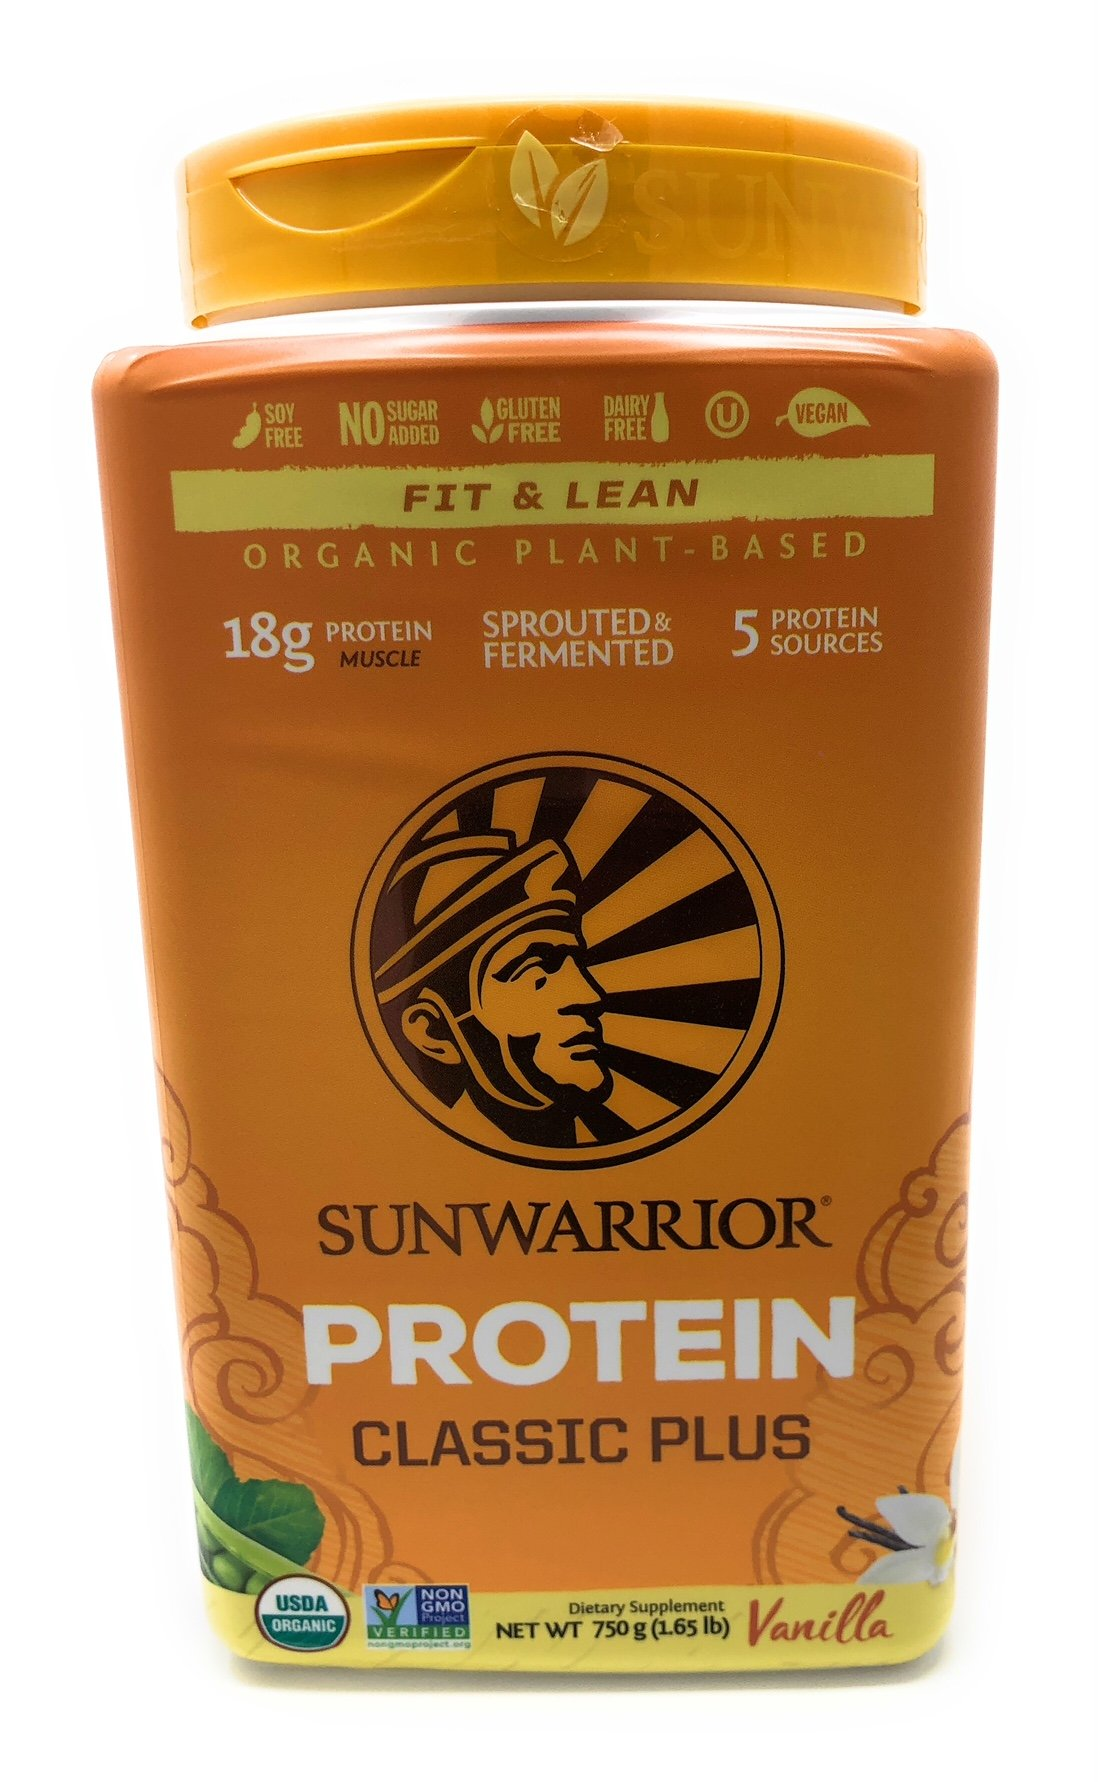 Sunwarrior - Classic Plus, Vegan Protein Powder with Peas & Brown Rice, Raw Organic Plant Based Protein, Vanilla, 30 Servings by Sunwarrior